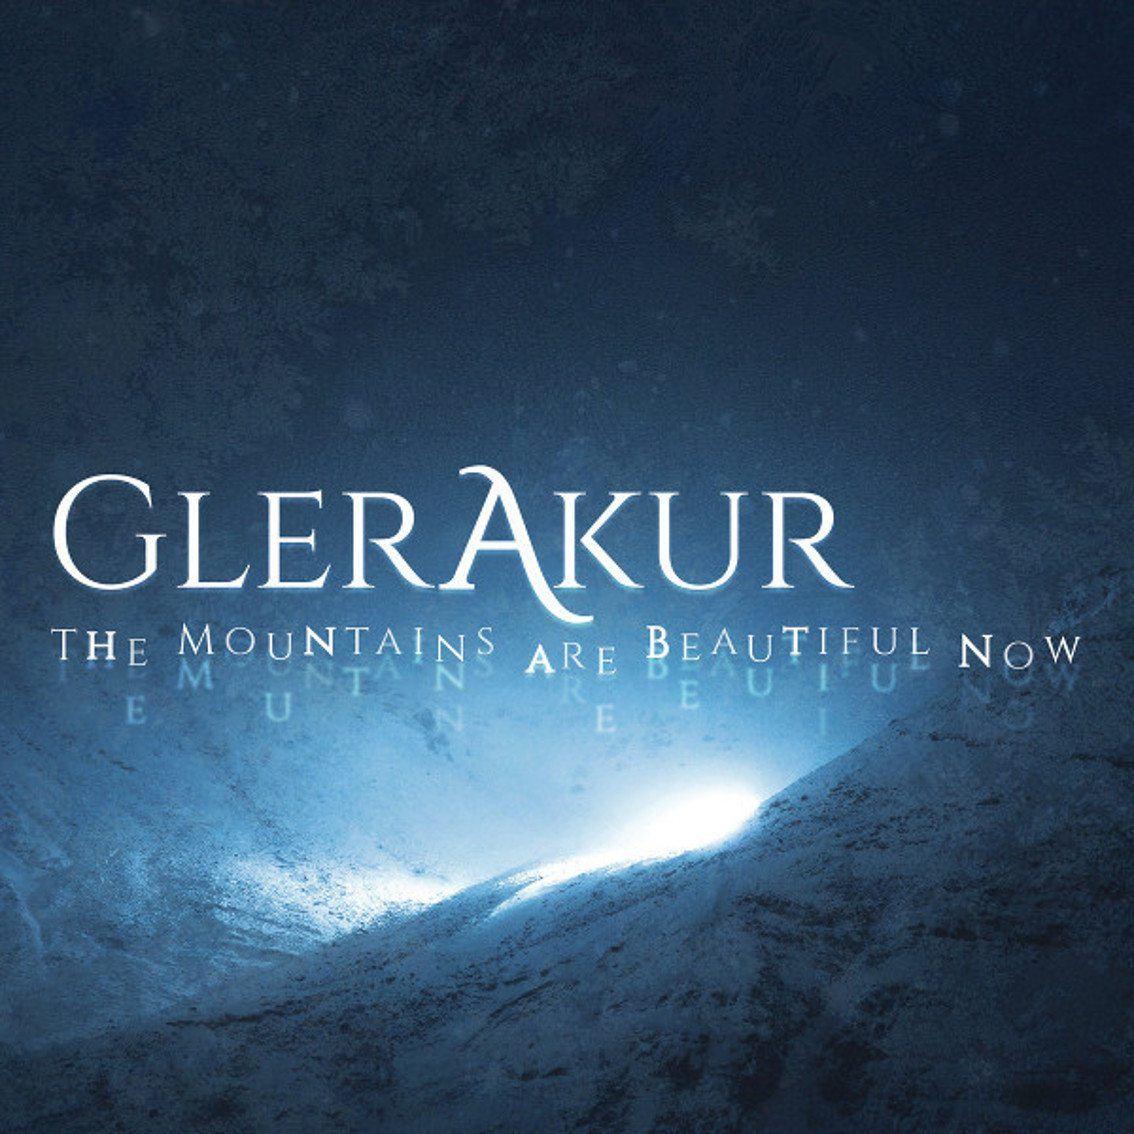 Glerakur debuts with'The Mountains Are Beautiful Now' - out as 2CD hardcover book and coloured vinyl